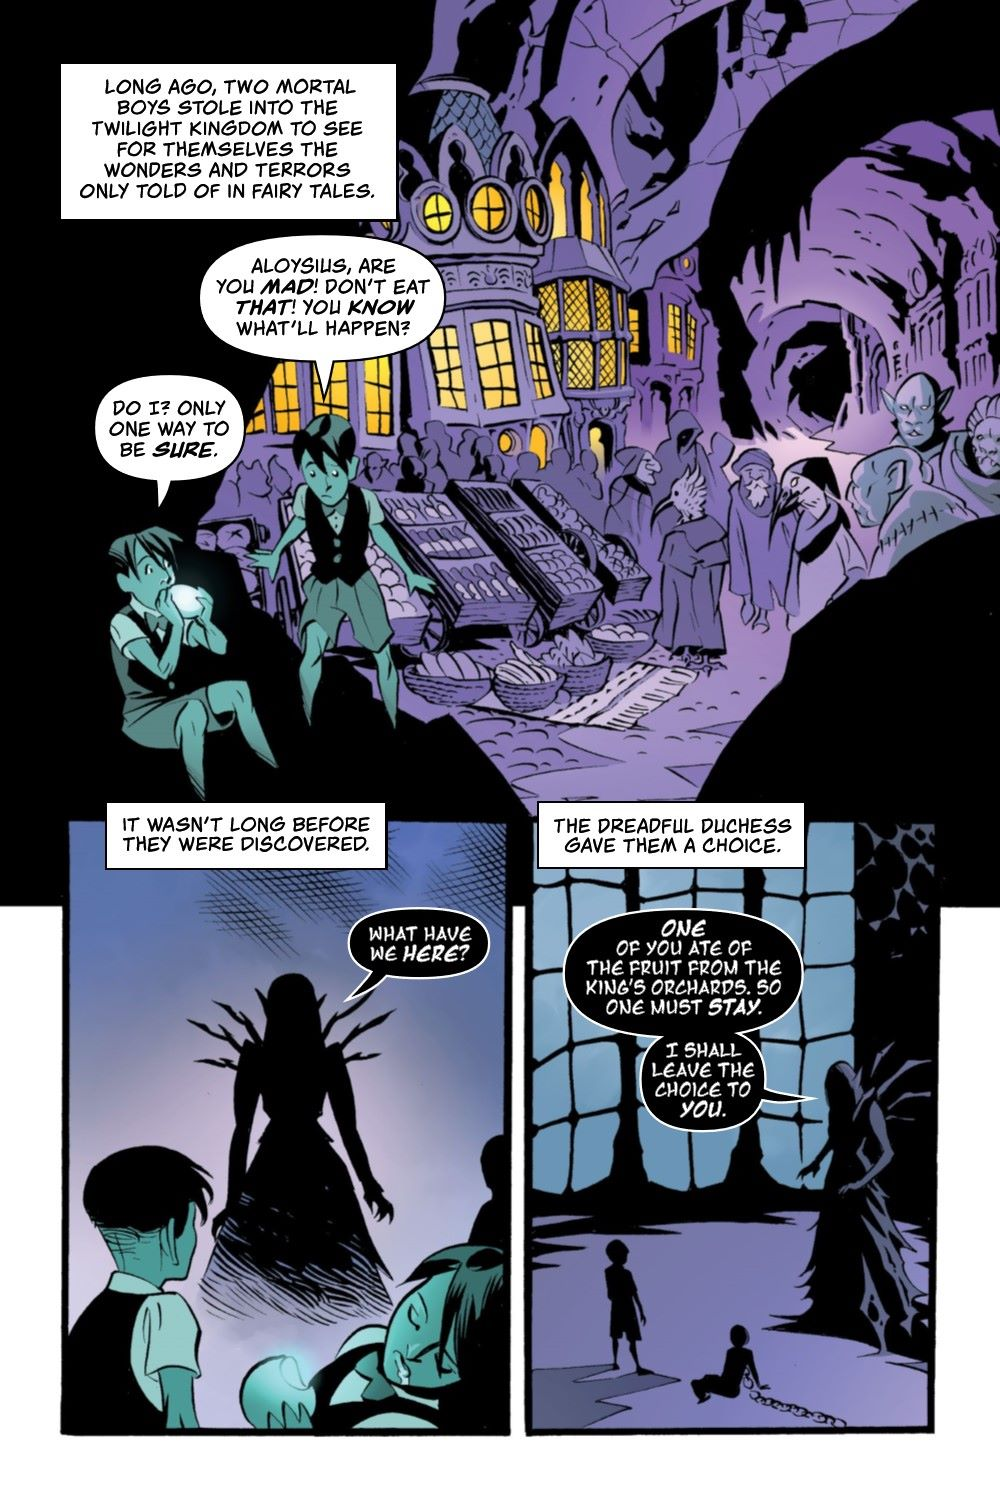 CRUMCHRON-V1-REFERENCE-008 ComicList Previews: THE CRUMRIN CHRONICLES VOLUME 1 THE CHARMED AND THE CURSED TP